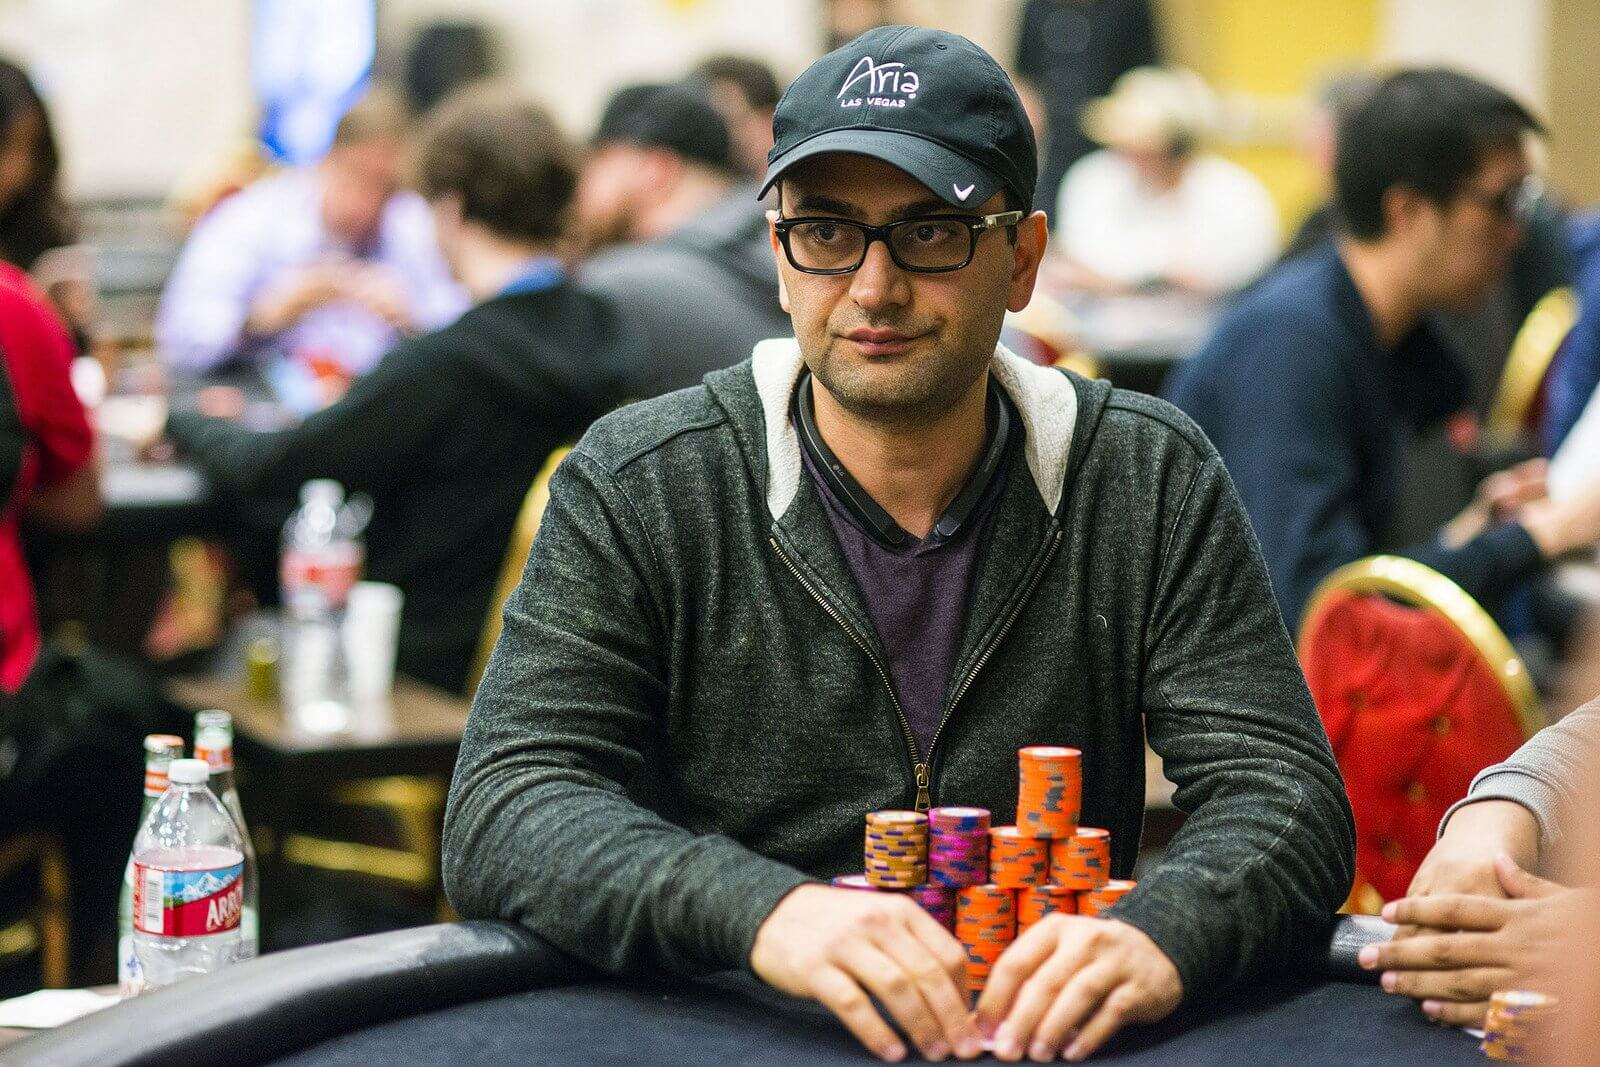 Antonio 'The Magician' Esfandiari table toilet disqualification best prop bets